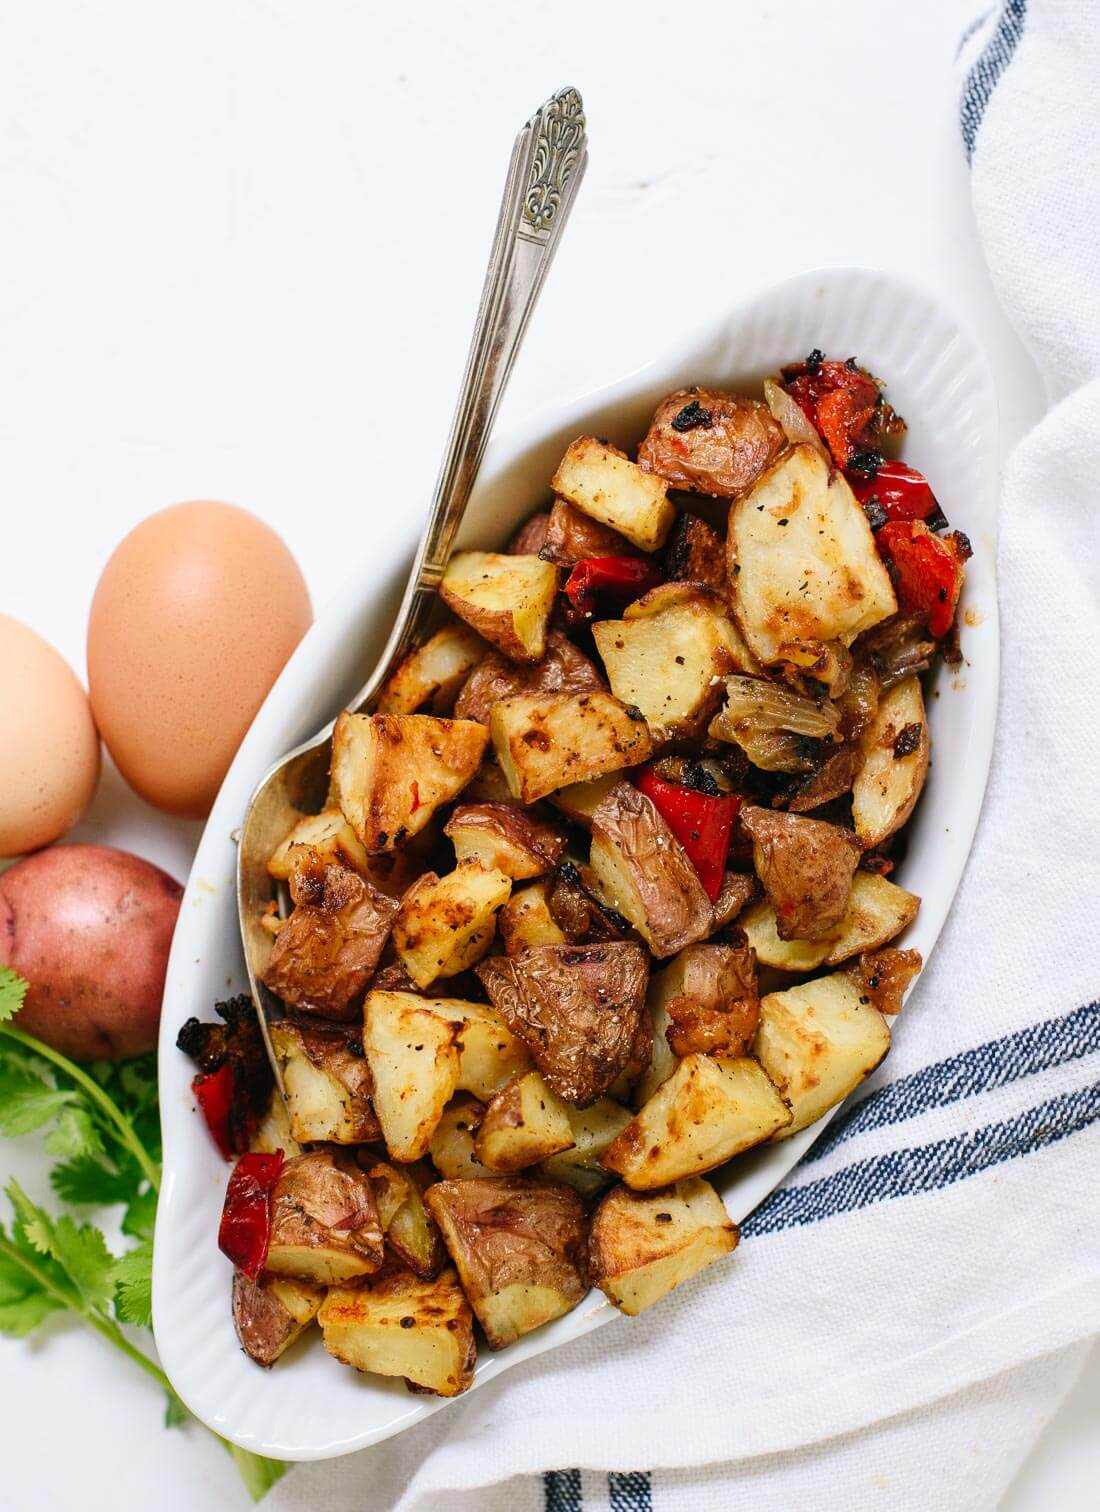 Amazing crispy roasted breakfast potatoes (also called home fries!). They are absolutely delicious, easy to make, and healthier than fried potatoes! #breakfast